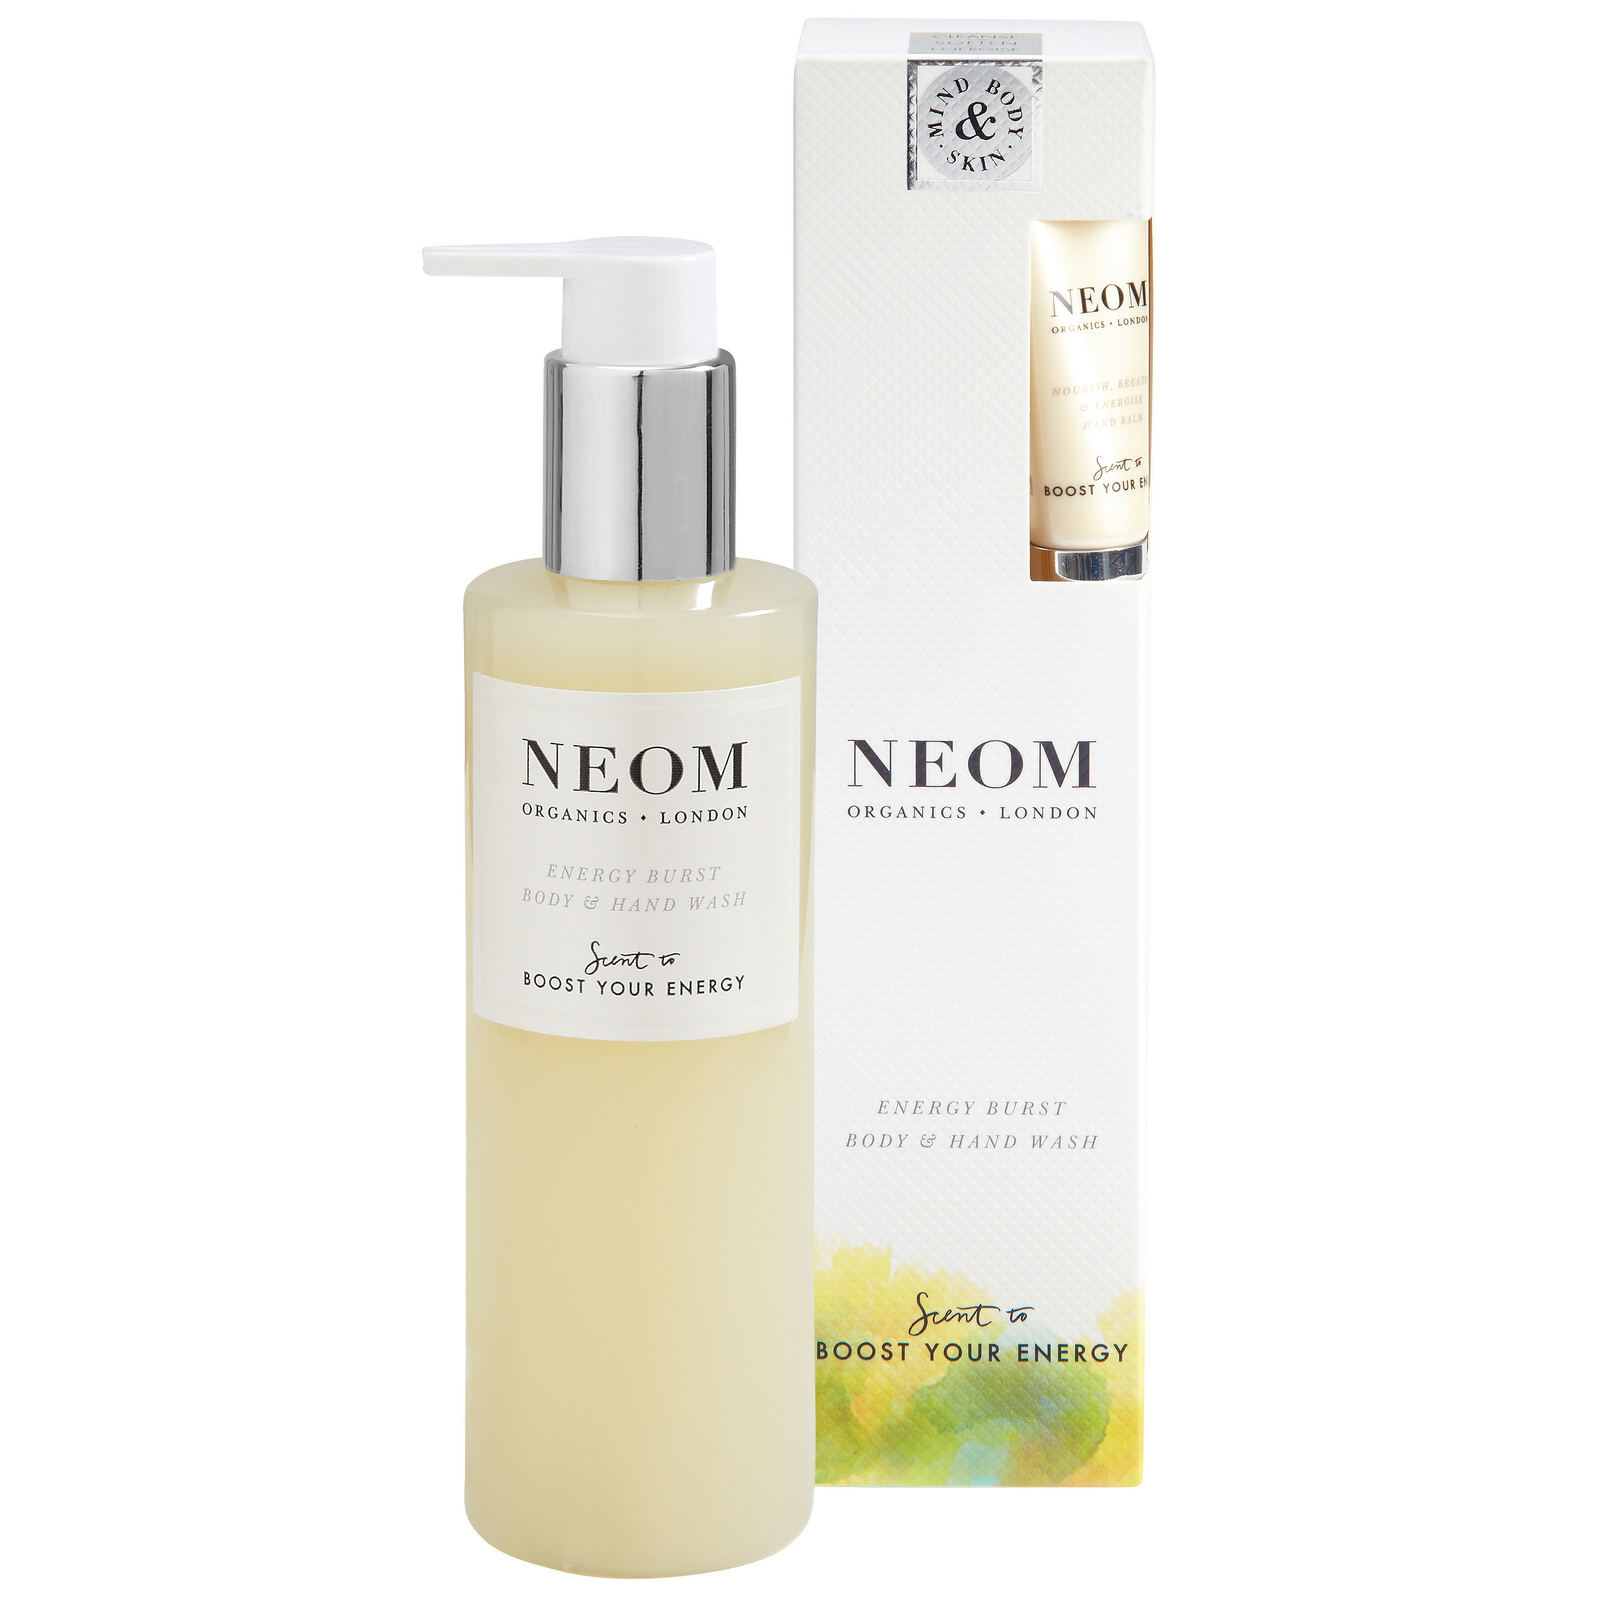 Neom Organics London Scent To Boost Your Energy Energy Burst Body & Hand Wash 250ml + Free Hand Balm 10ml